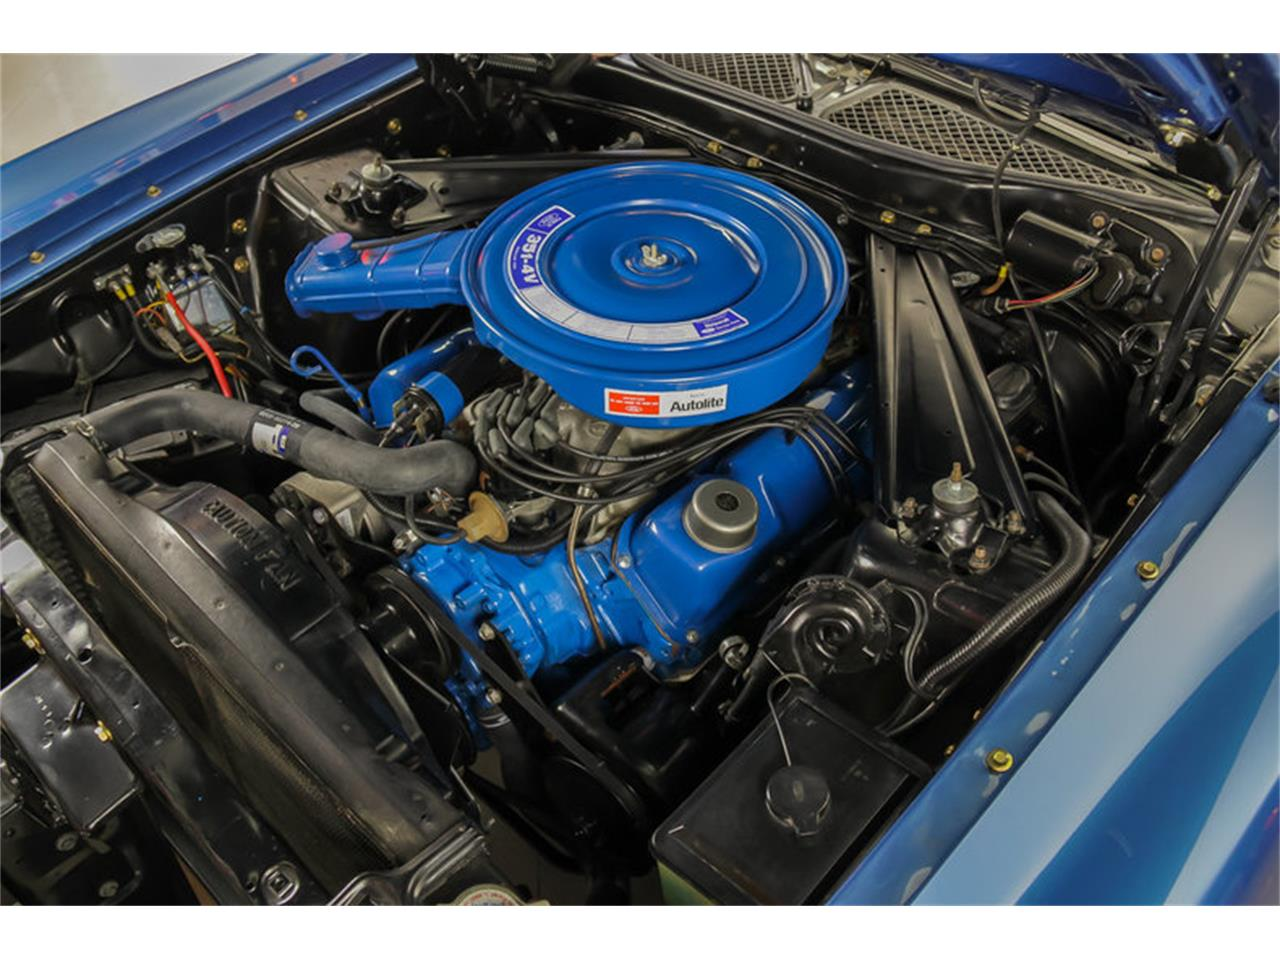 Large Picture of 1973 Ford Mustang Mach 1 Q Code - $34,900.00 - JDX1